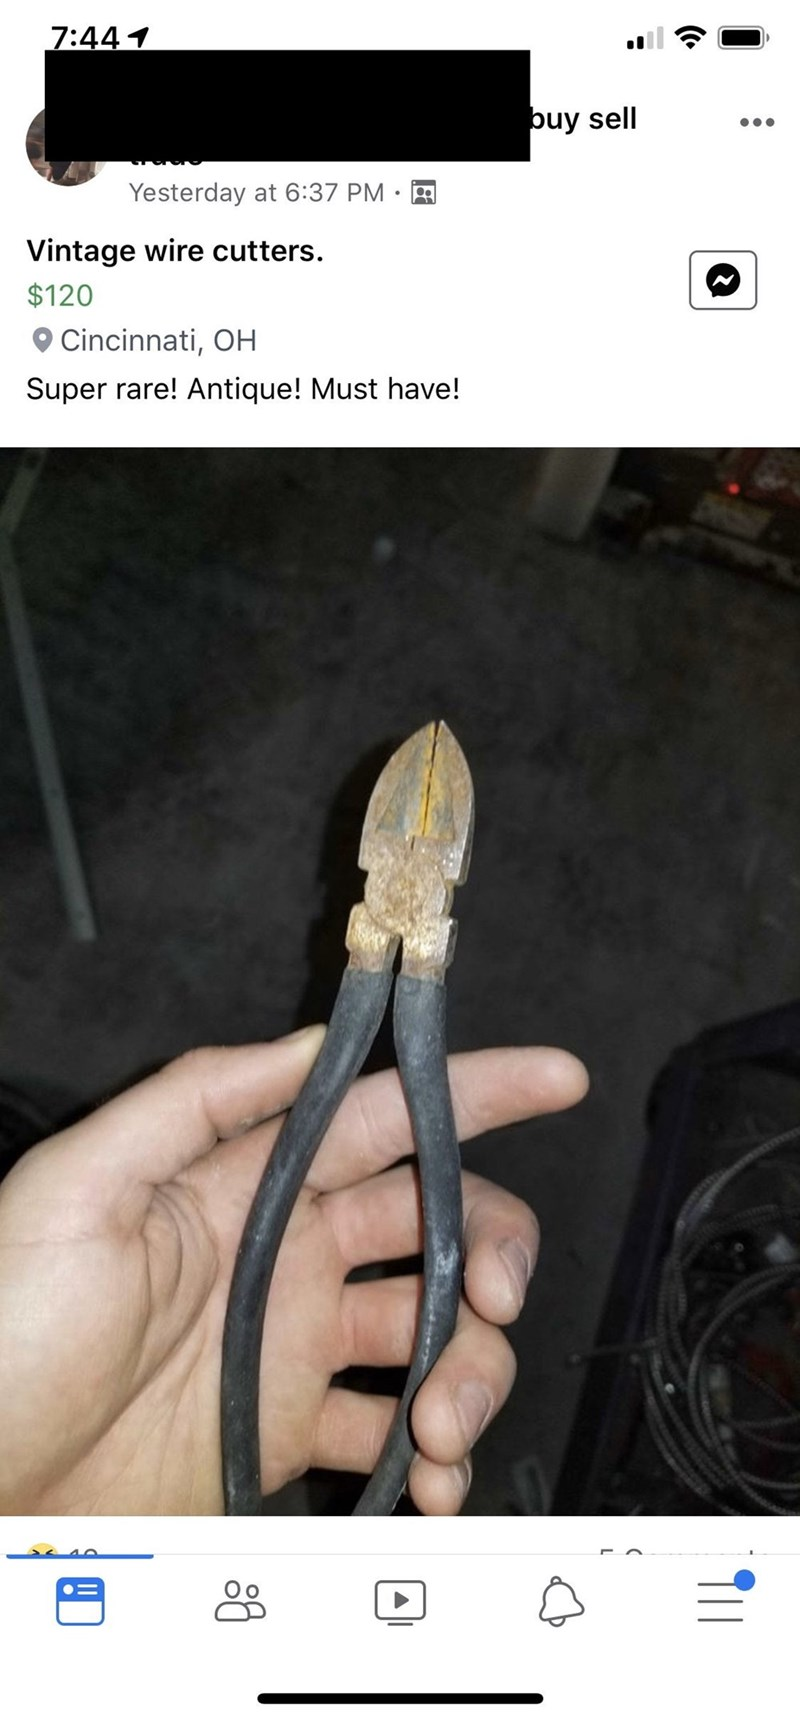 Hand - 7:44 1 buy sell Yesterday at 6:37 PM Vintage wire cutters. $120 O Cincinnati, OH Super rare! Antique! Must have!